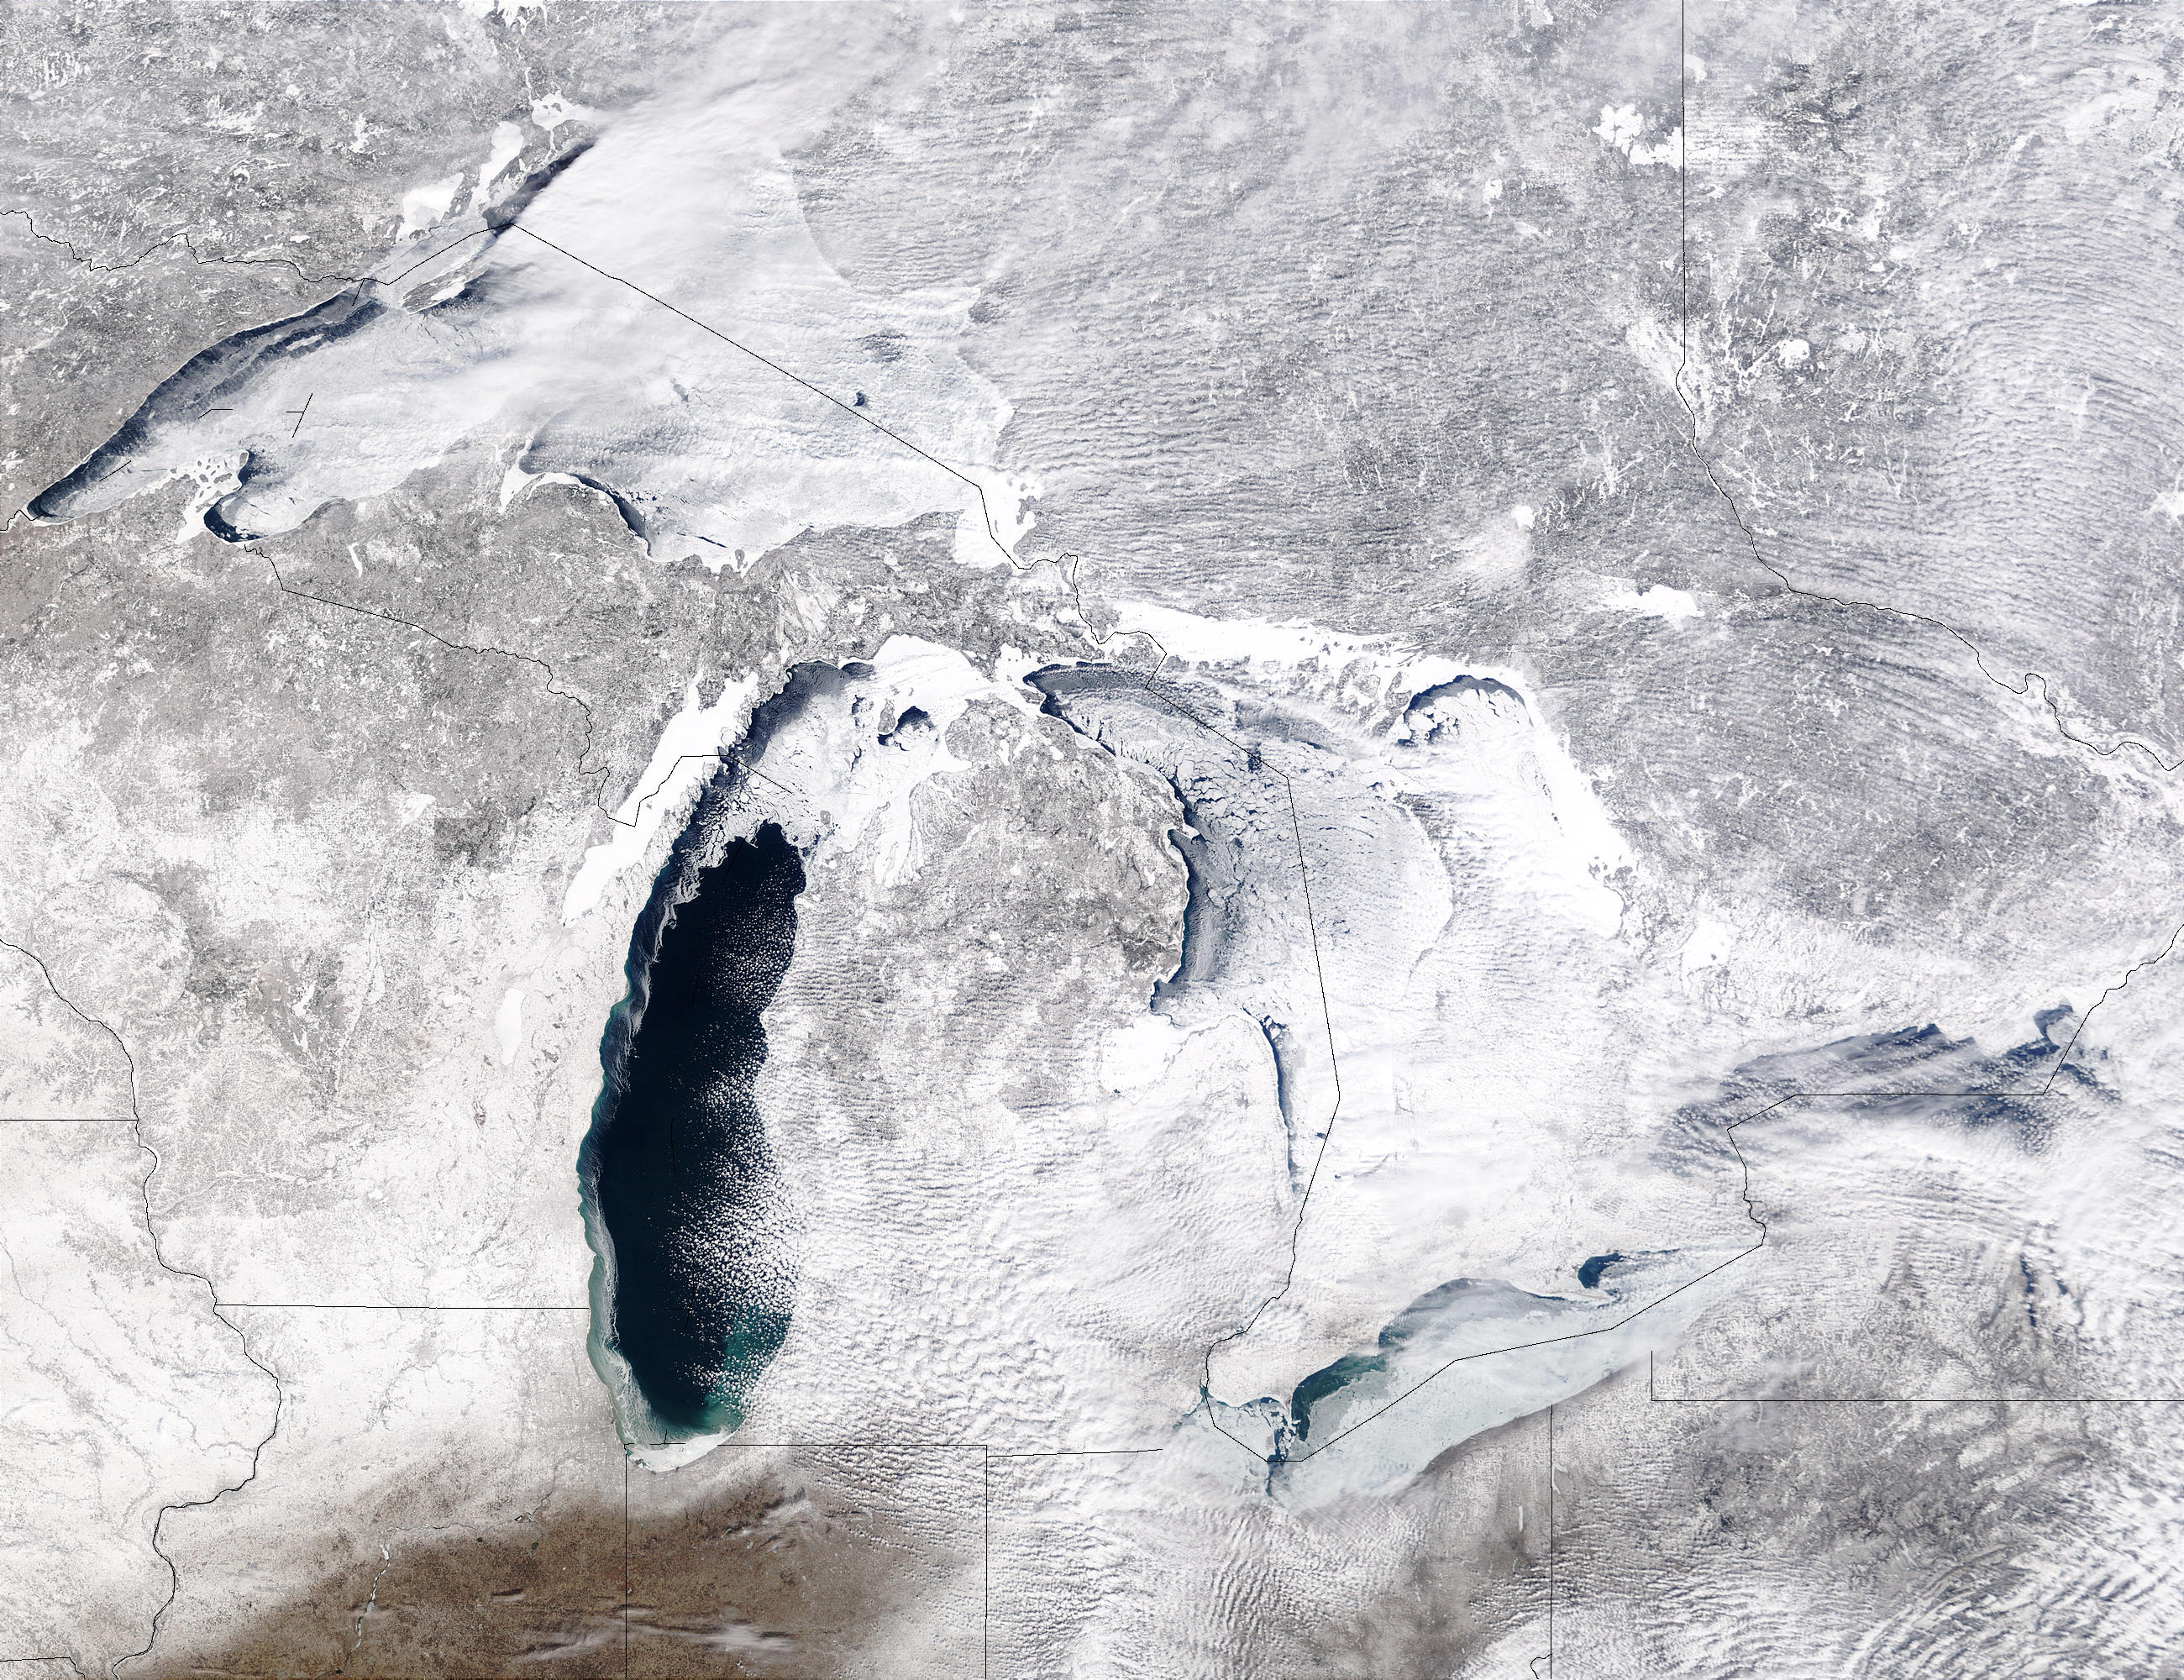 Ice covers the Great Lakes. (Photo: NASA Earth Observatory)